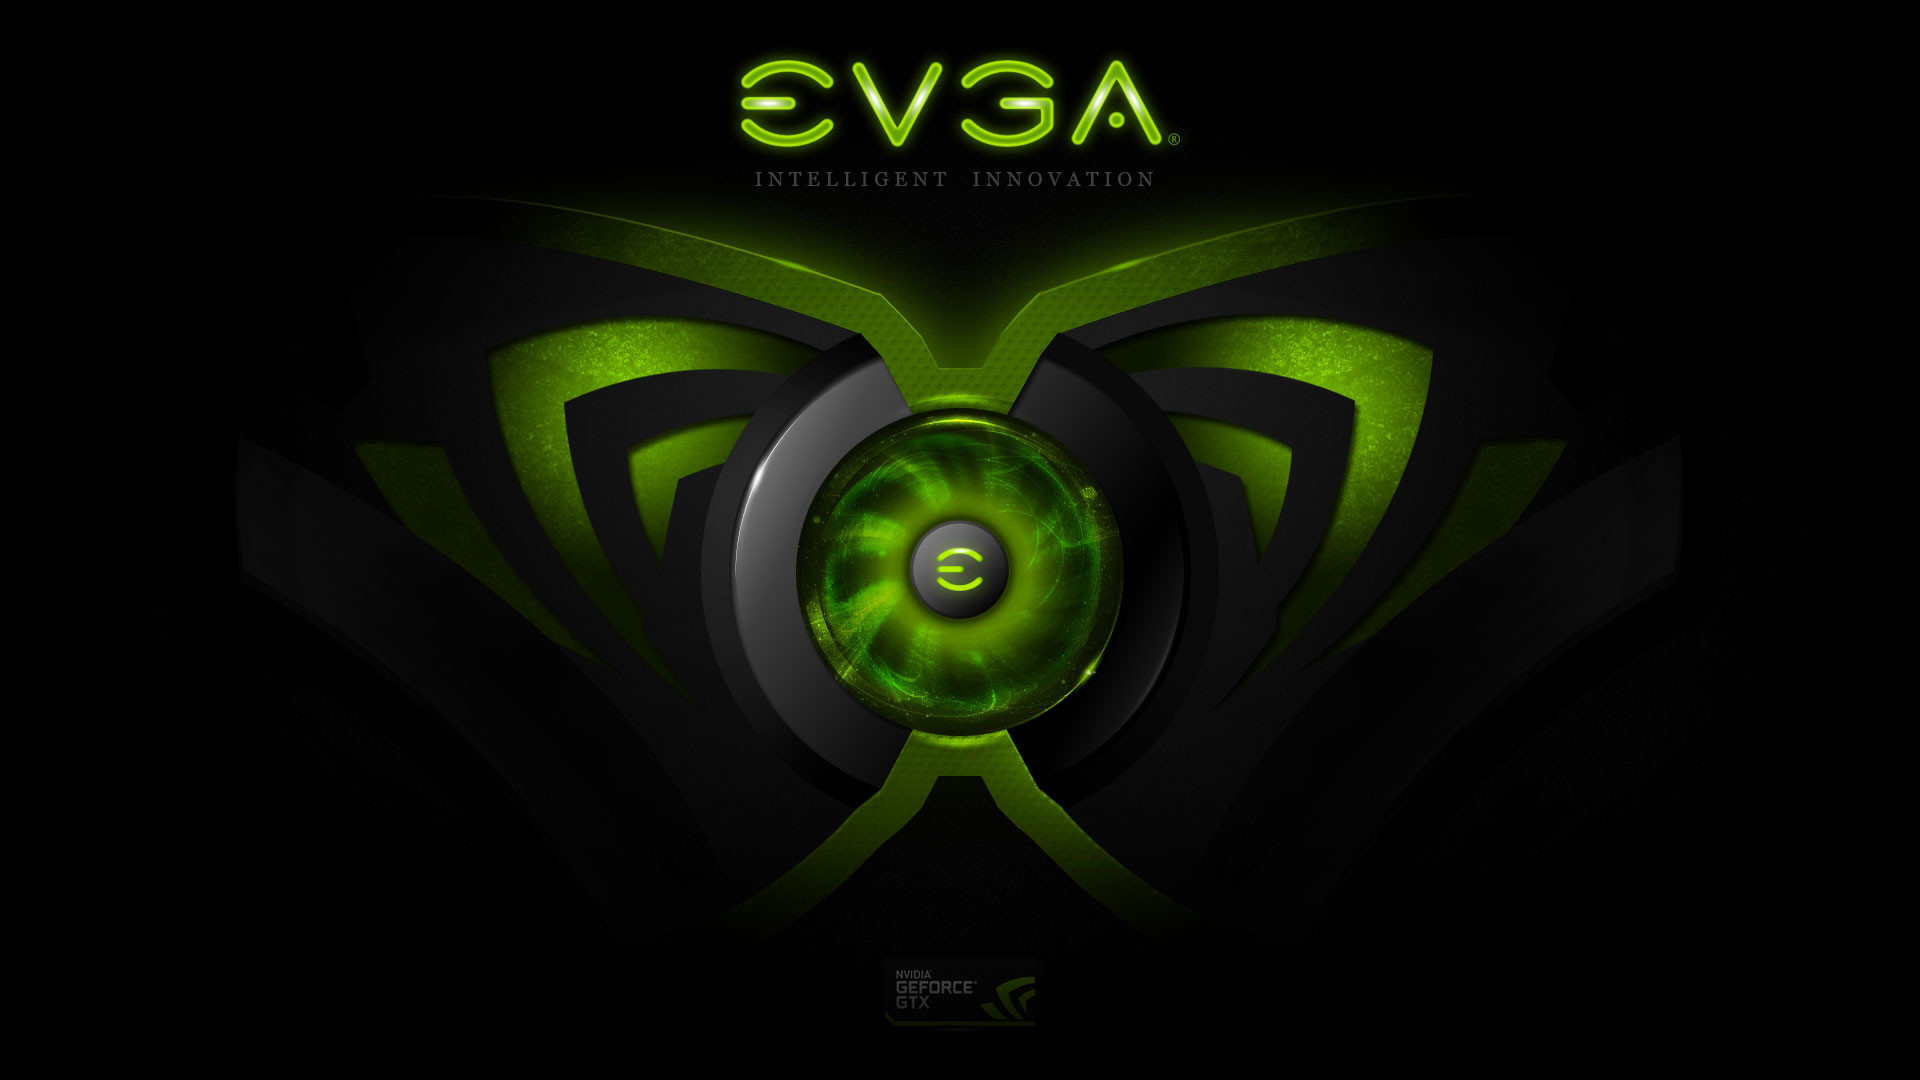 1920x1080 2nd runner-up: EVGA GTX 670 02G-P4-2670-KR - $400 - PradeepkNayak